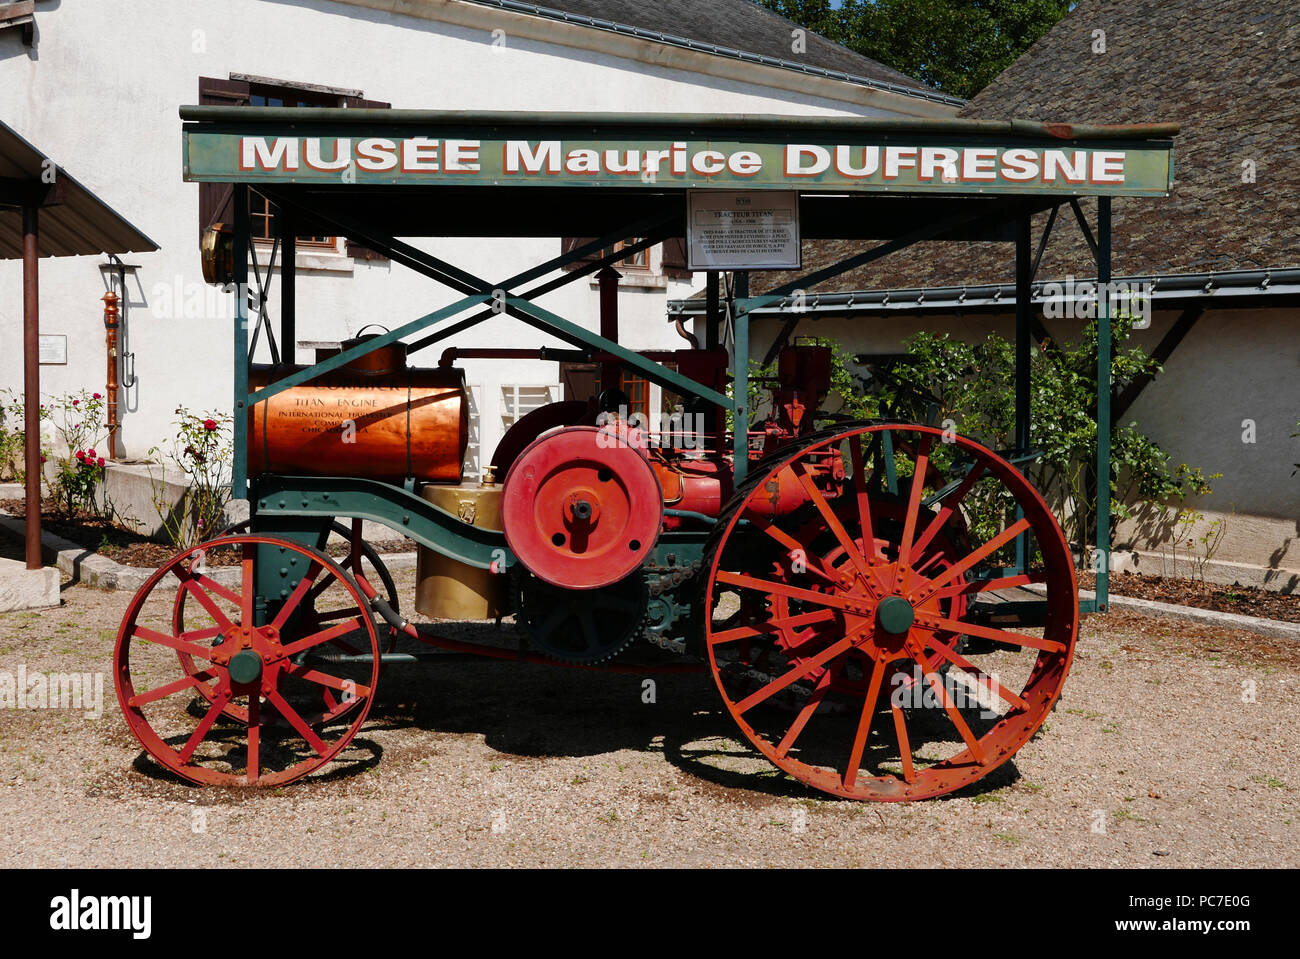 Musee Maurice Dufresne Museum in the Marnay mill, near Tours and ...